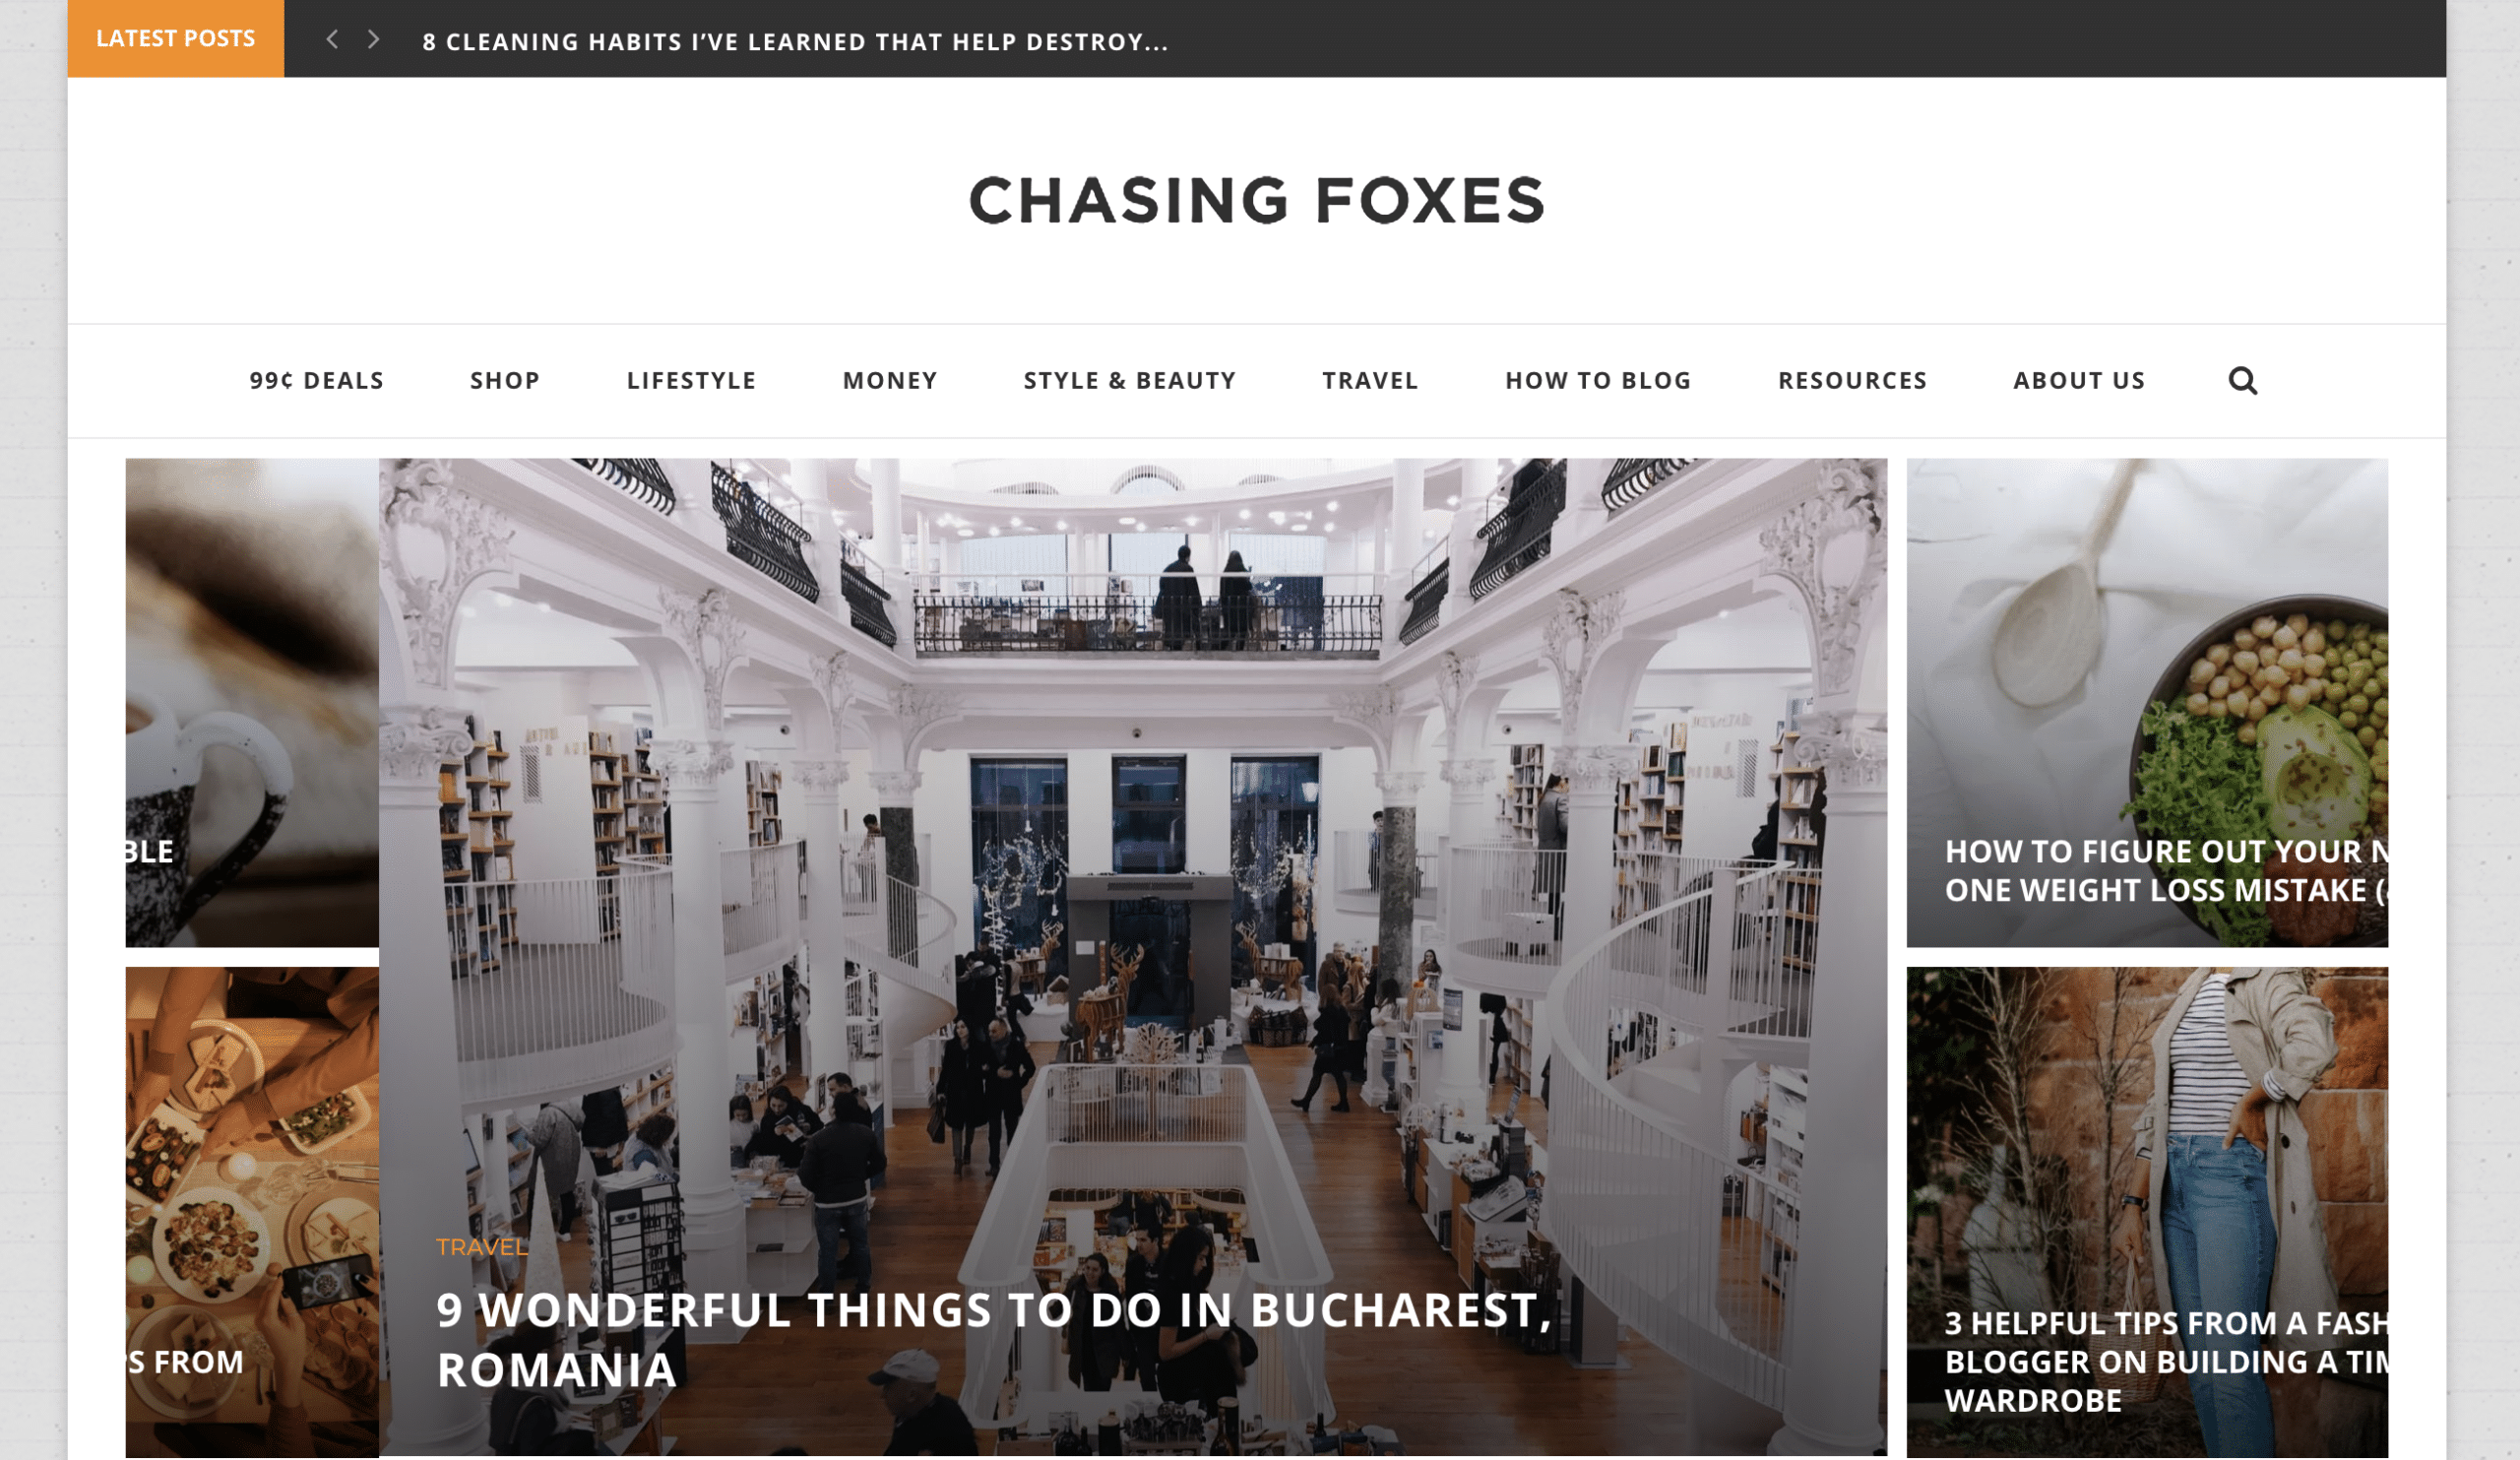 types of blogs that make money in the lifestyle niche is chasing foxes